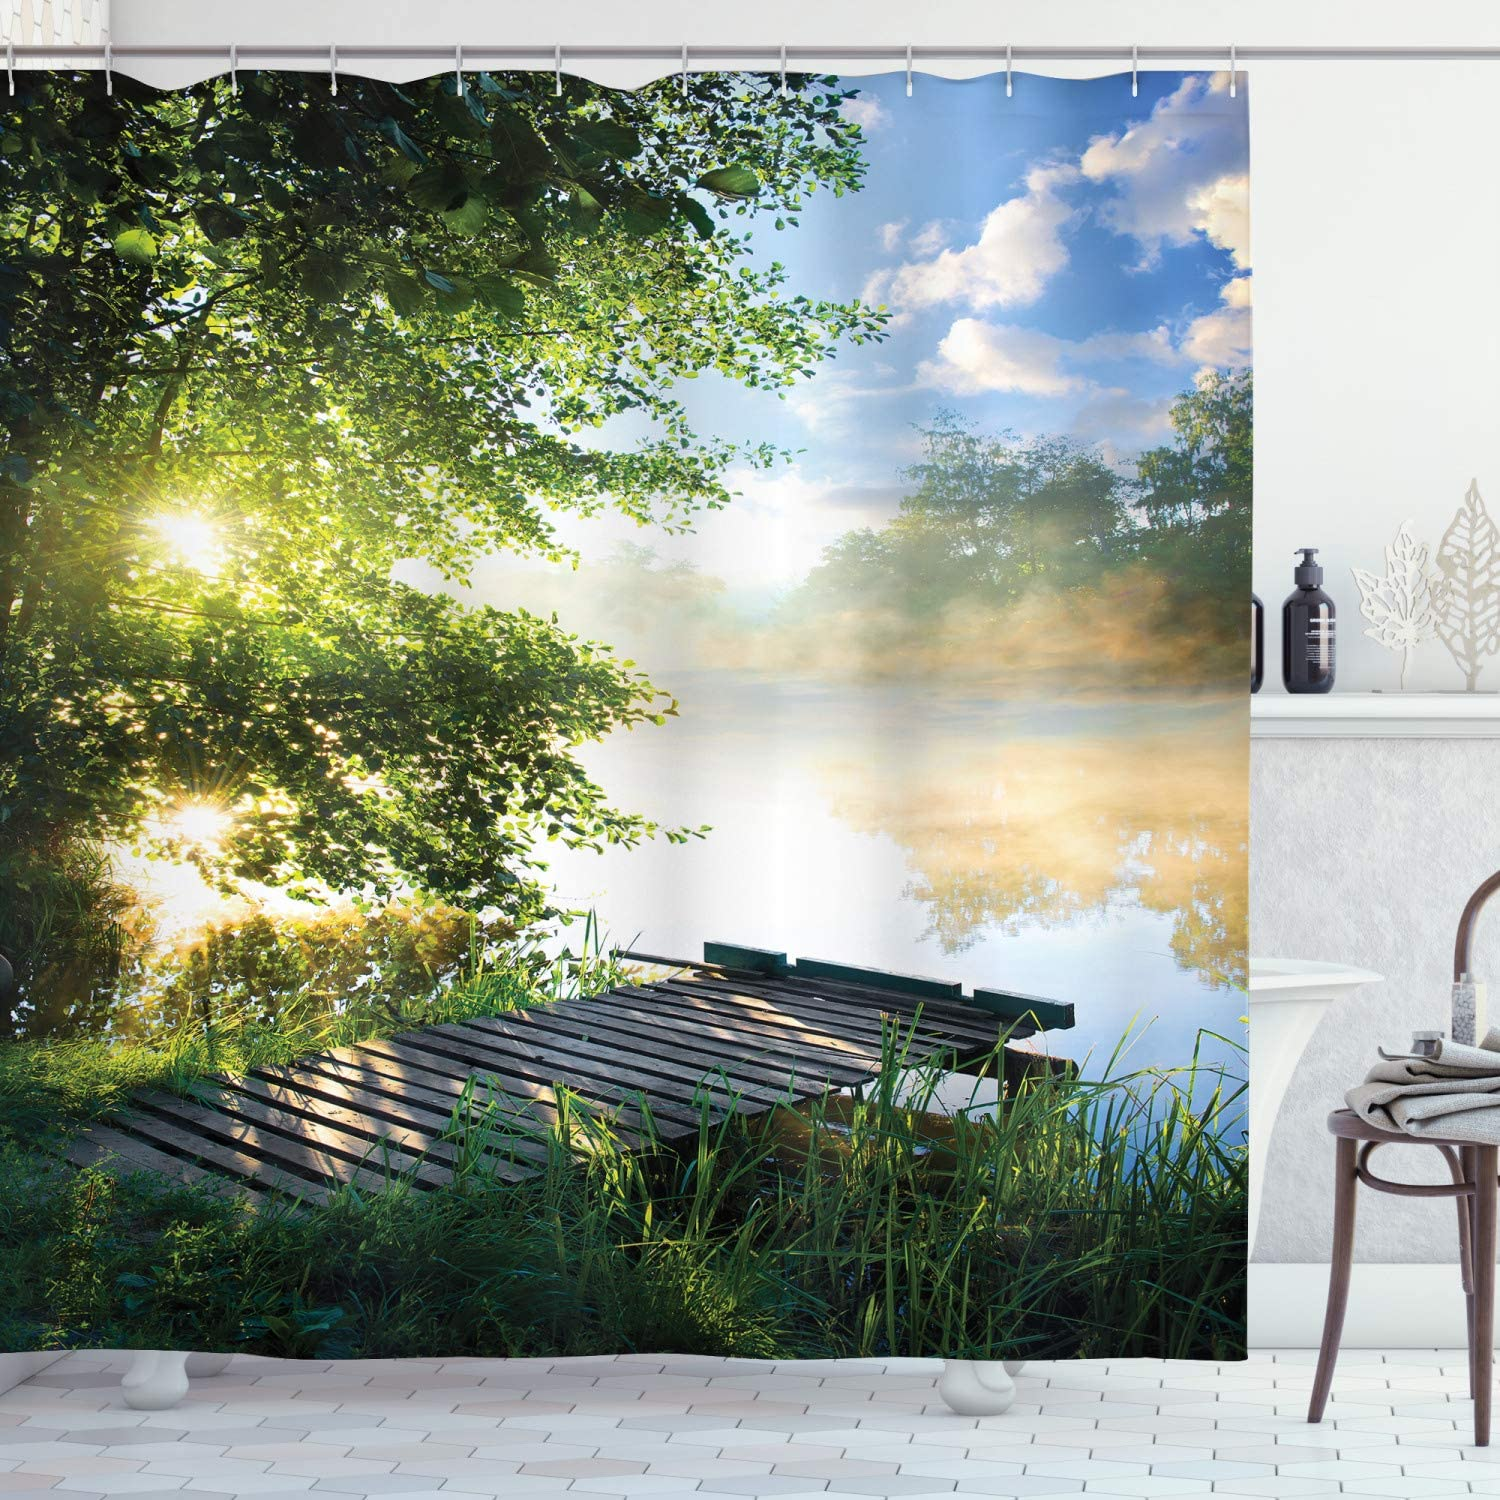 Ambesonne Landscape Shower Curtain, Fishing Pier by River in The Morning with Clouds and Trees Nature Image, Cloth Fabric Bathroom Decor Set with Hooks, 70